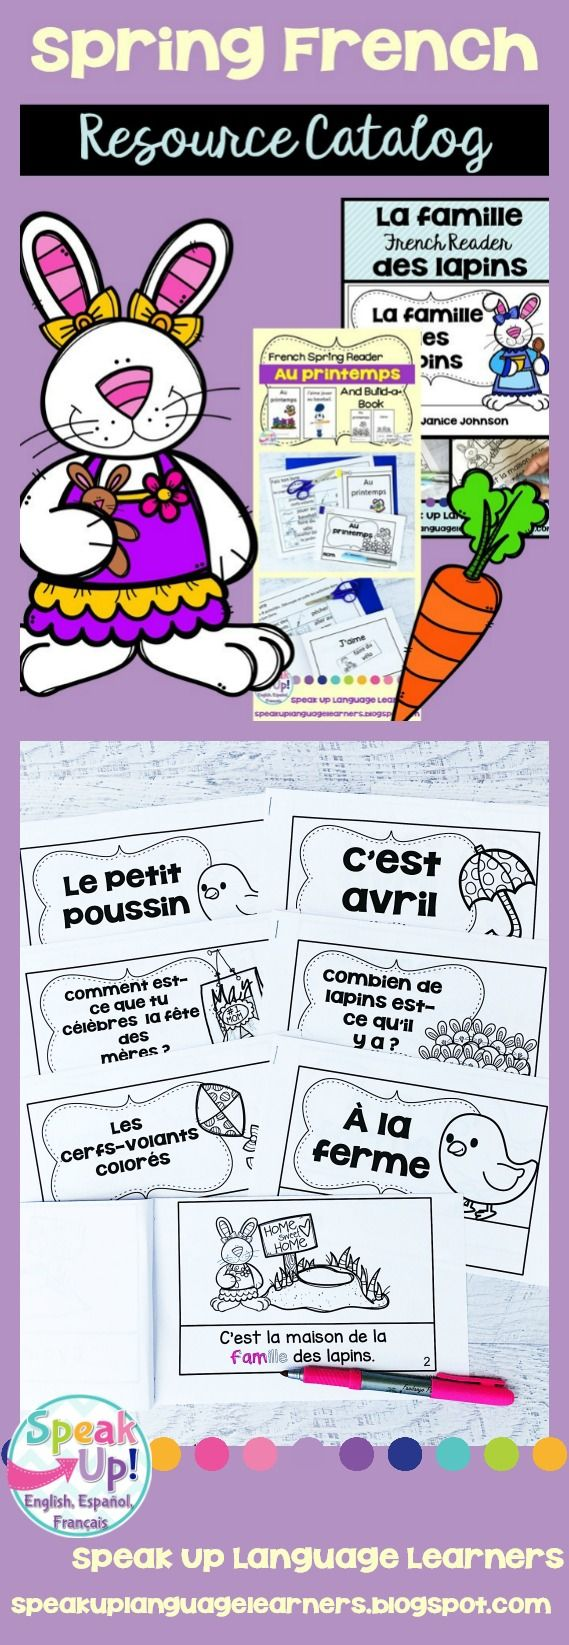 This is a clickable catalog to make browsing the Speak Up Language Learners Spring resources for French class easier than ever!   With this free download you are able to see spring items grouped by topic and with clickable images.